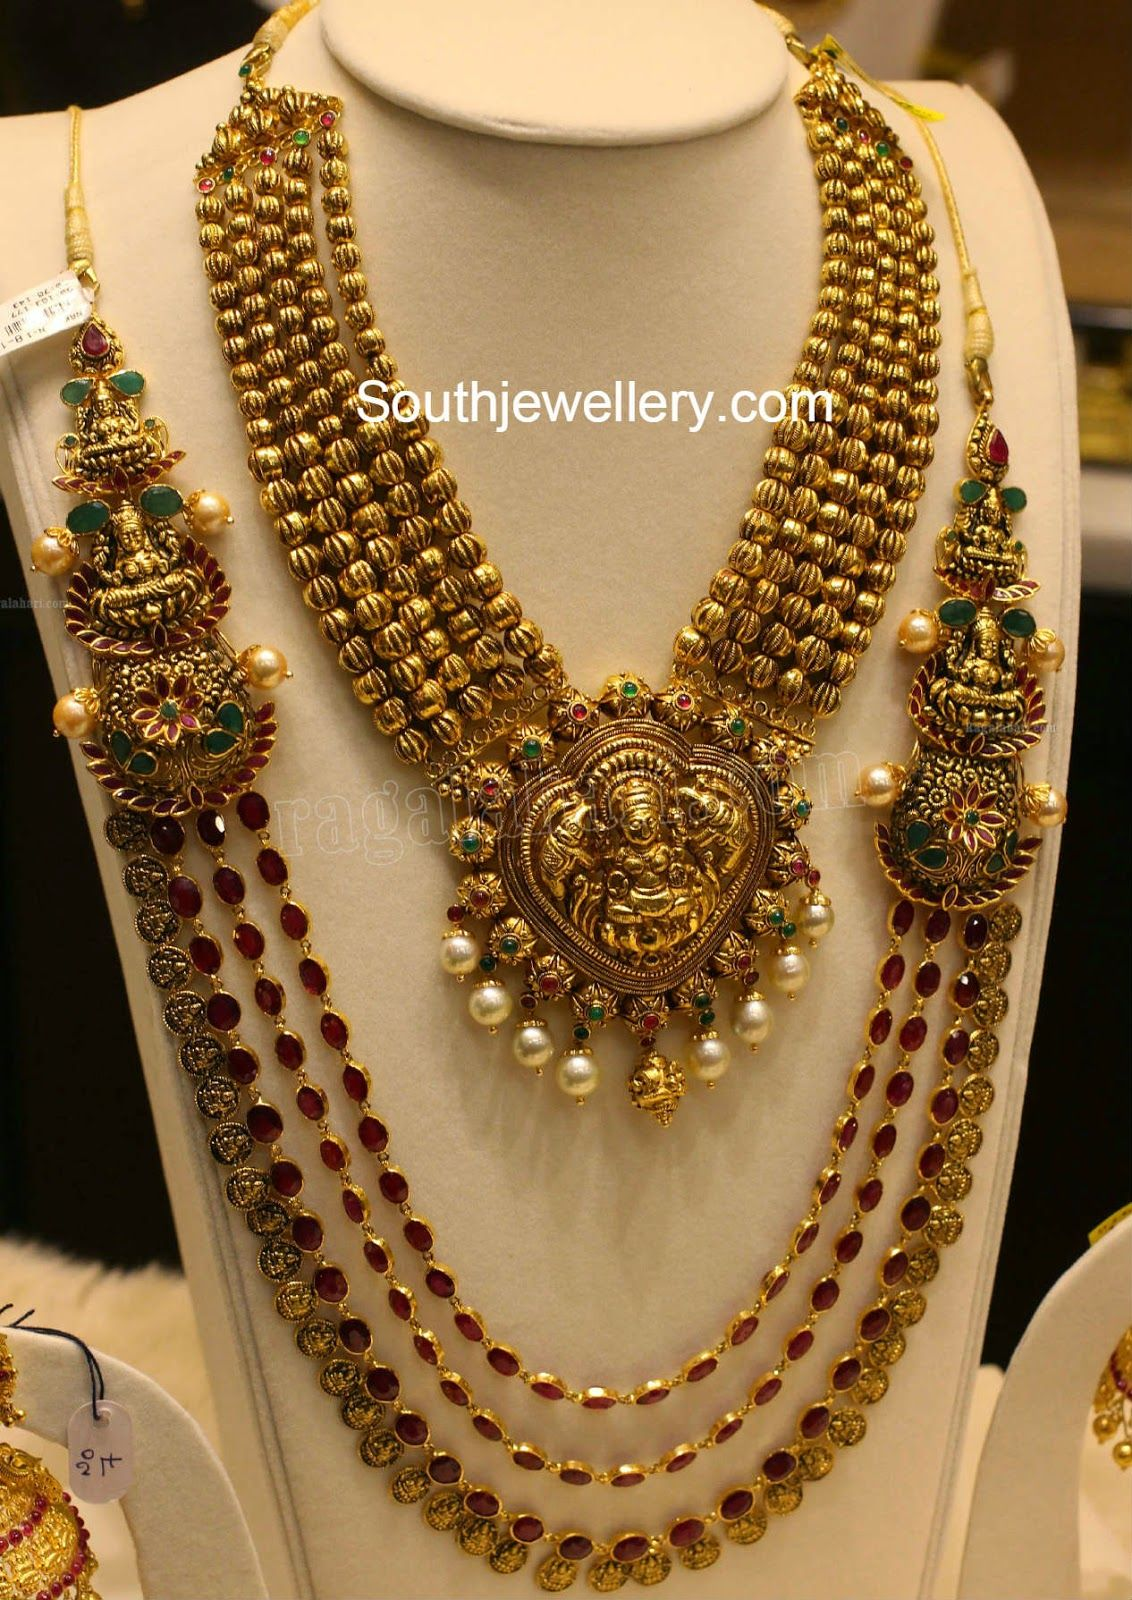 Pai jewellers gold necklace designs latest indian jewellery designs - Latest Temple Jewellery Designs